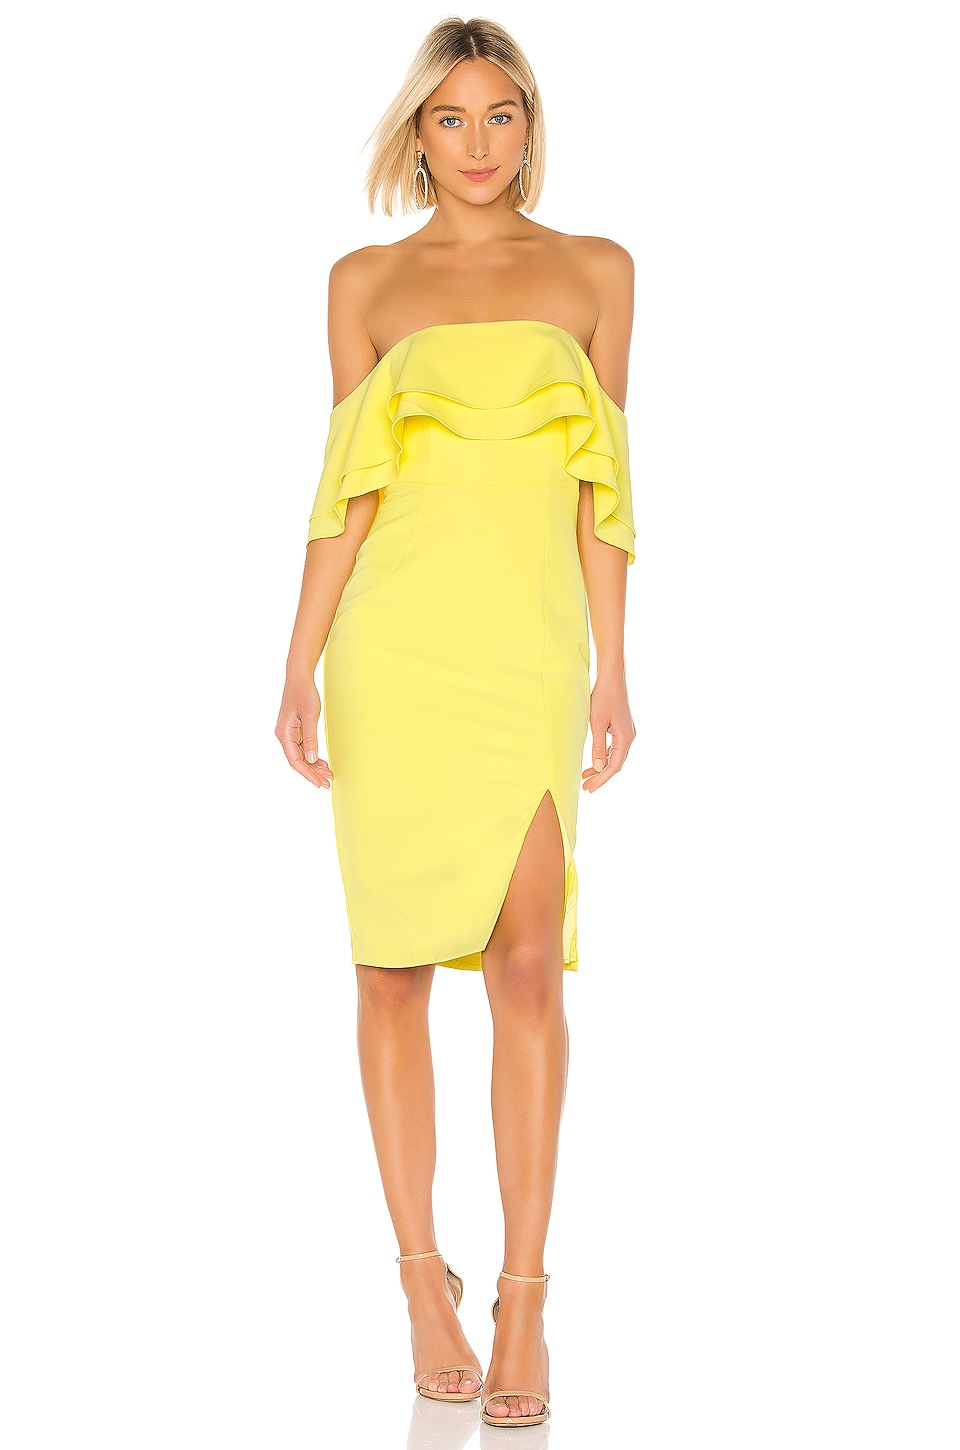 Bardot Band Dress in Lemon Drop